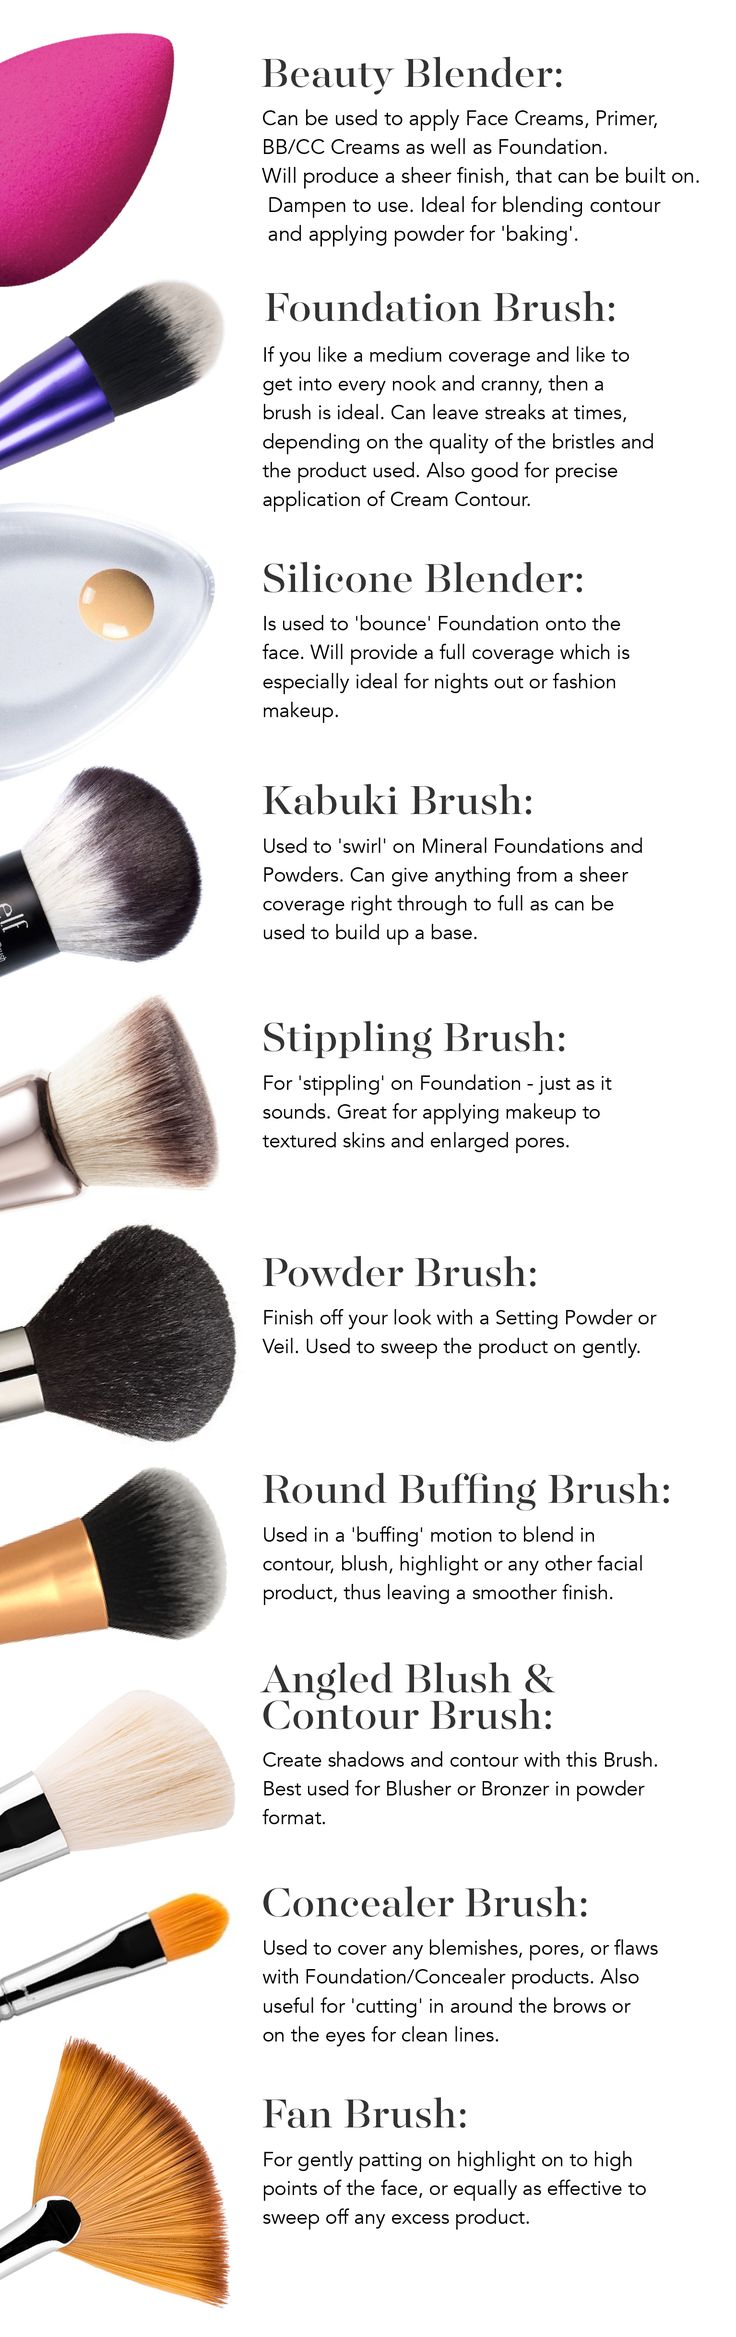 Look your best by using the right tools with our guide to Makeup Brushes and How To Use Them!